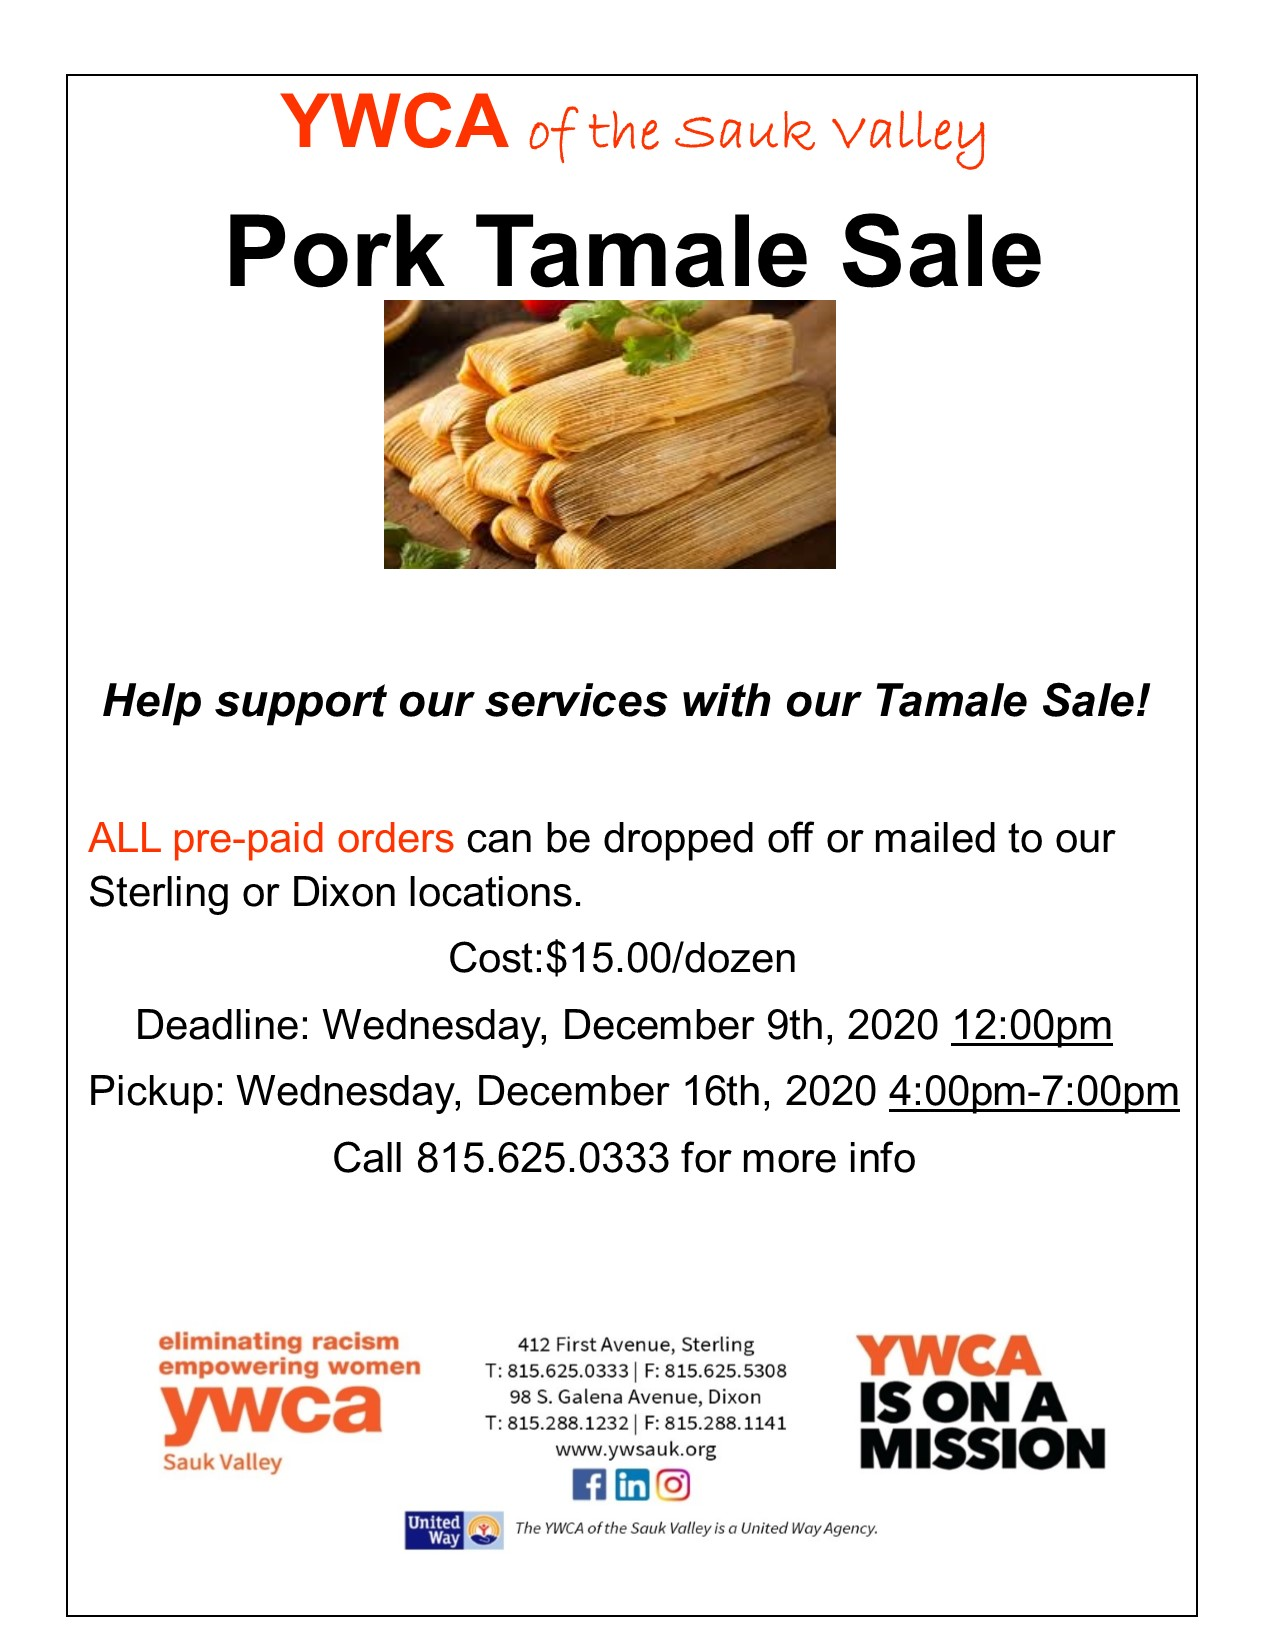 Pork Tamale Sale @ YWCA of the Sauk Valley